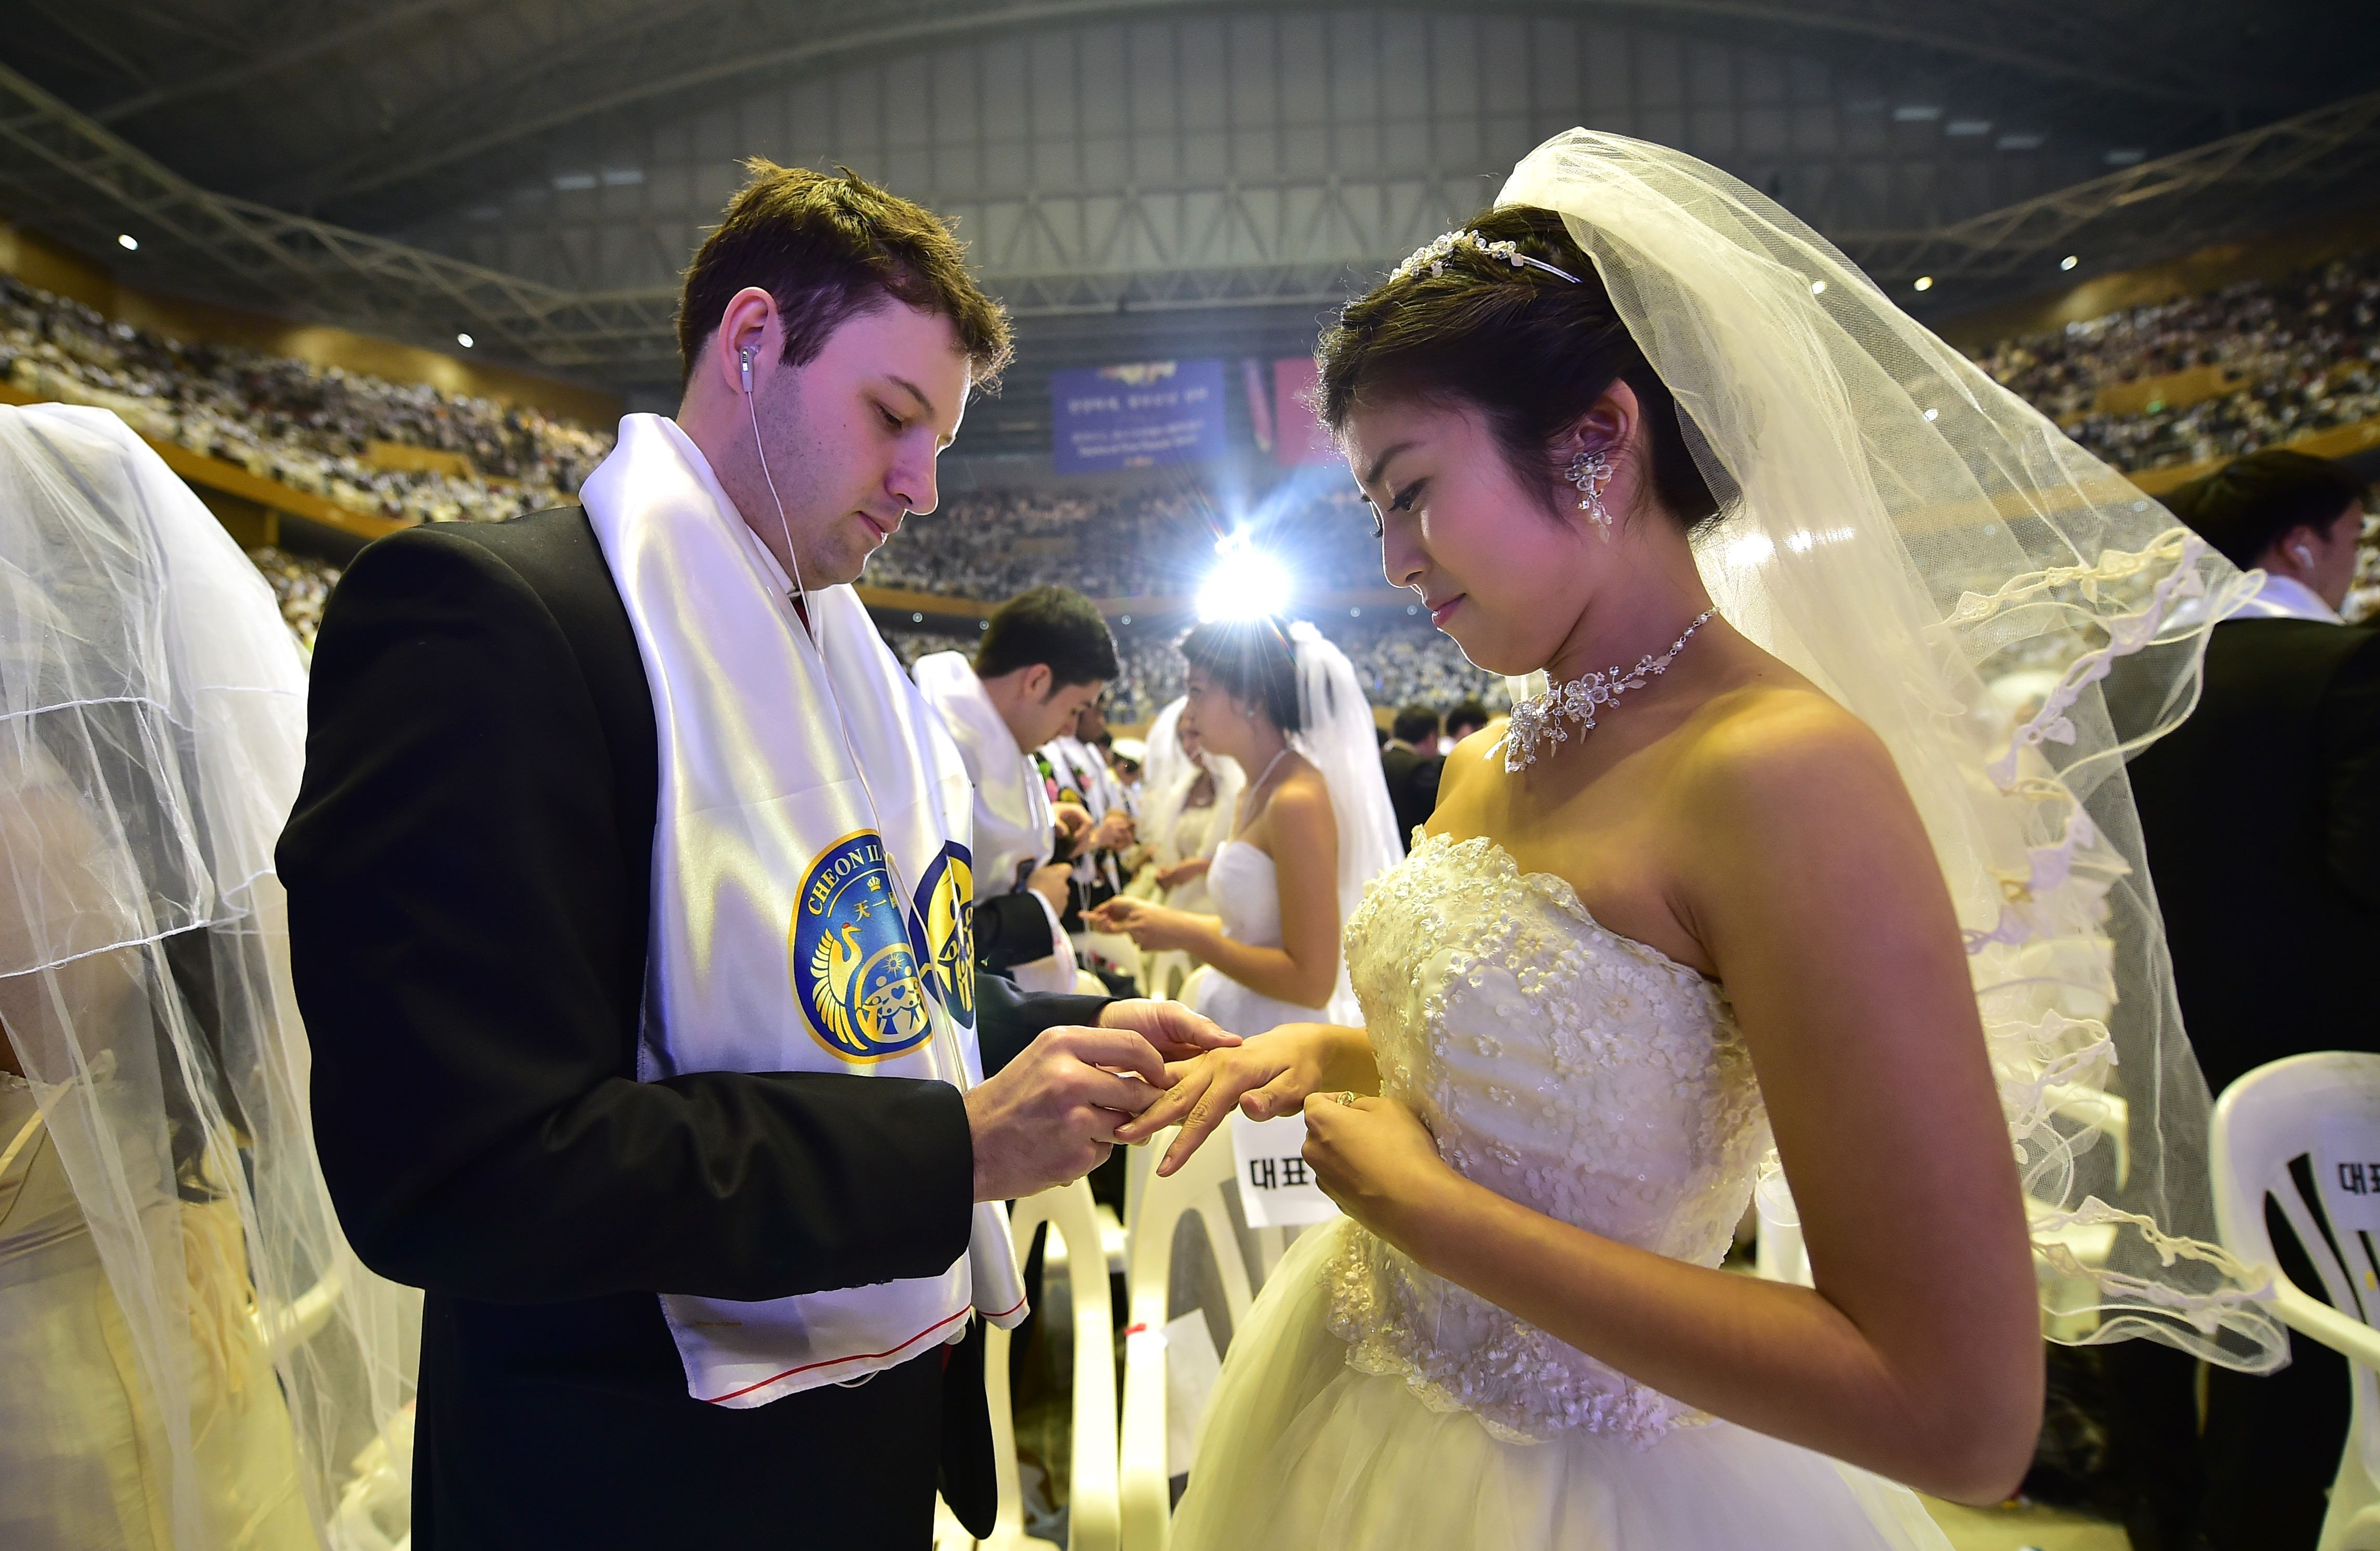 """A groom puts a ring on the finger of his bride during a mass wedding held by the Unification Church at Cheongshim Peace World Center in Gapyeong, east of Seoul, on February 20, 2016. Hundreds of couples were married at the South Korean headquarters of the Unification Church. The Unification Church, set up by Sun Myung Moon in Seoul in 1954, is one of the world's most controversial religious organisations, and its devotees are often dubbed """"Moonies"""" after the founder. AFP PHOTO / JUNG YEON-JE SKOREA--RELIGION-UNIFICATION-MARRIAGE"""